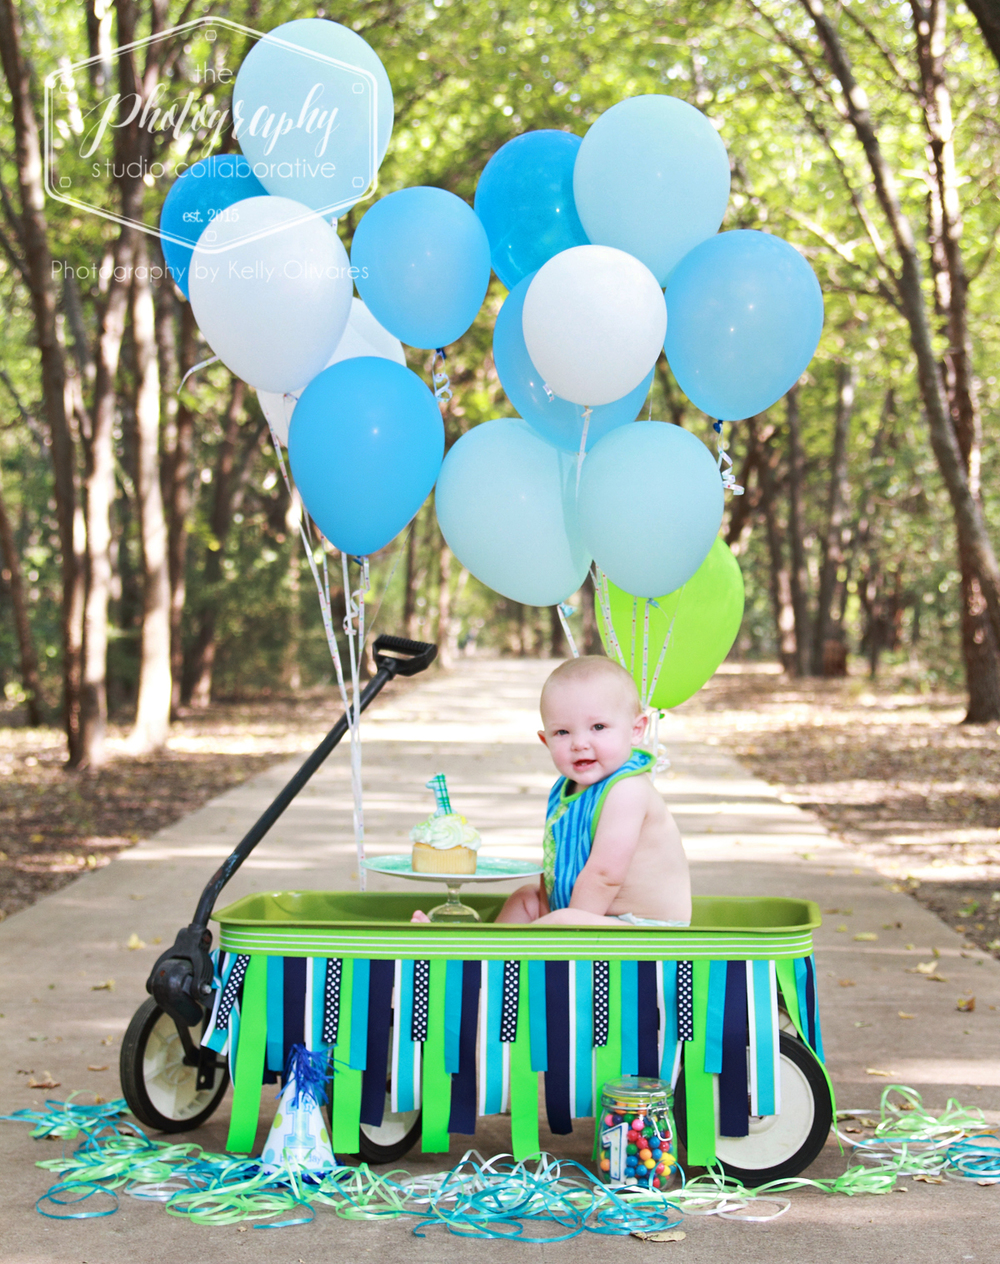 Kelly Olivares Photography Birthday Bash Session Cake Wagon